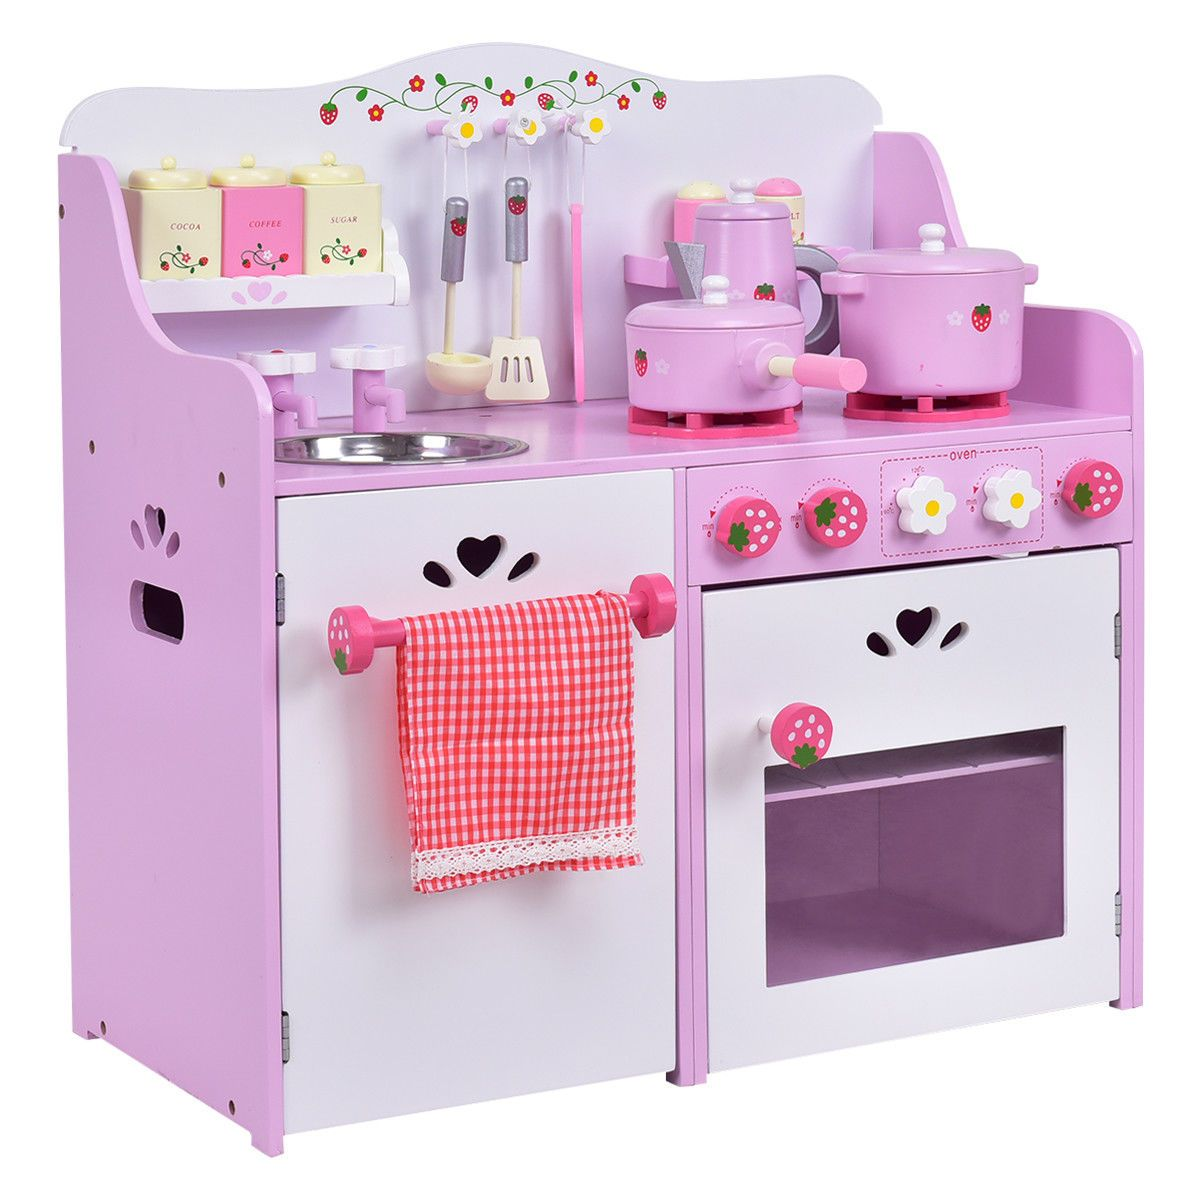 Kids Wooden Kitchen Toy Strawberry Pretend Cooking Playset Kitchen Sets For Kids Toy Kitchen Kids Wooden Kitchen